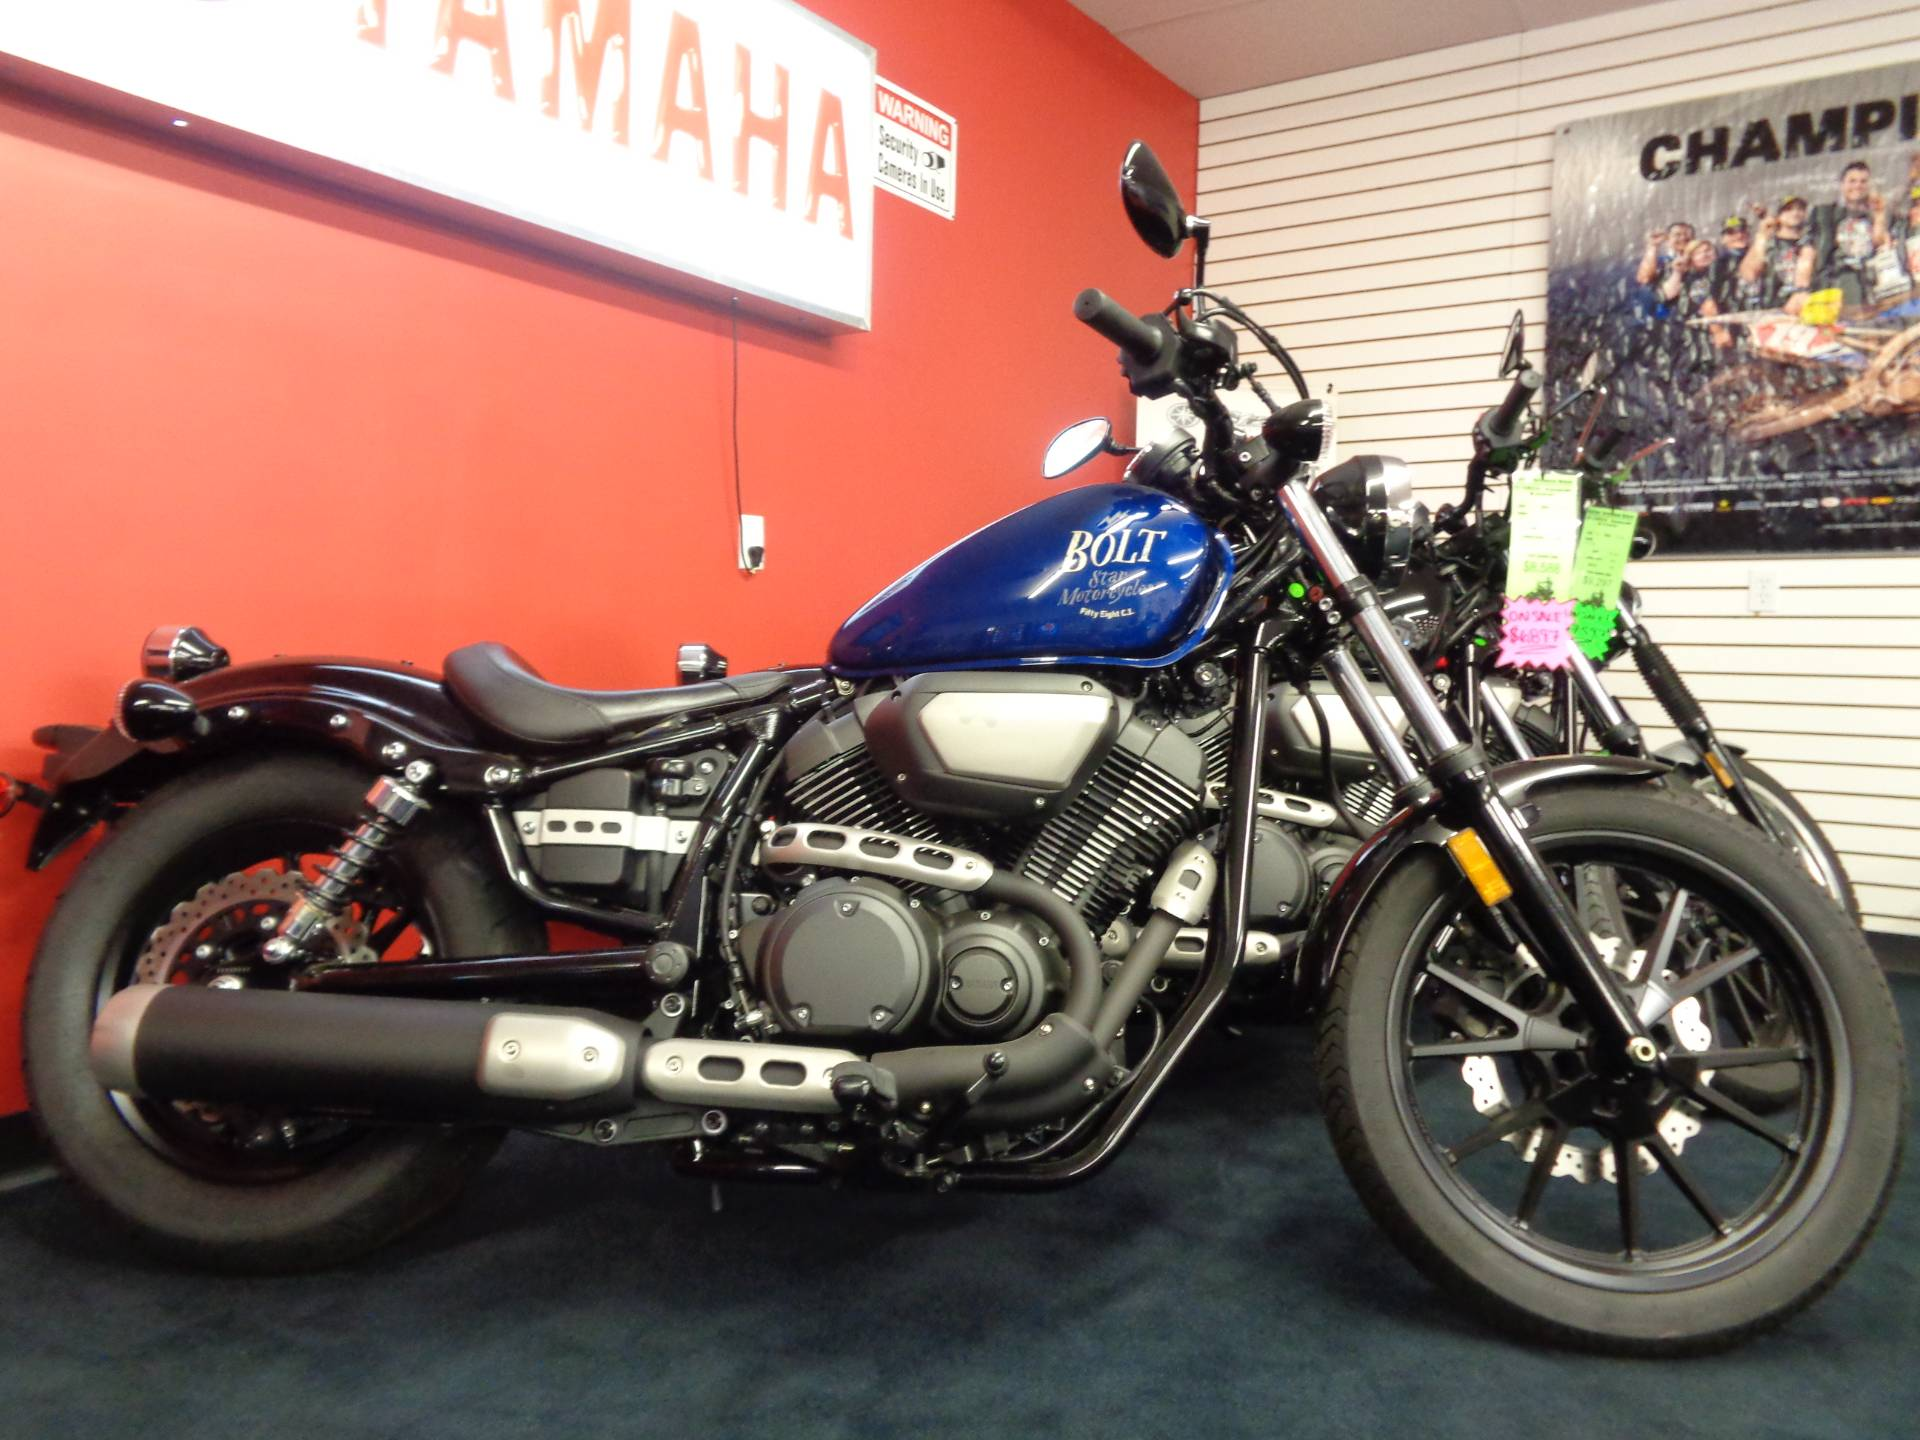 2016 Yamaha Bolt for sale 127520